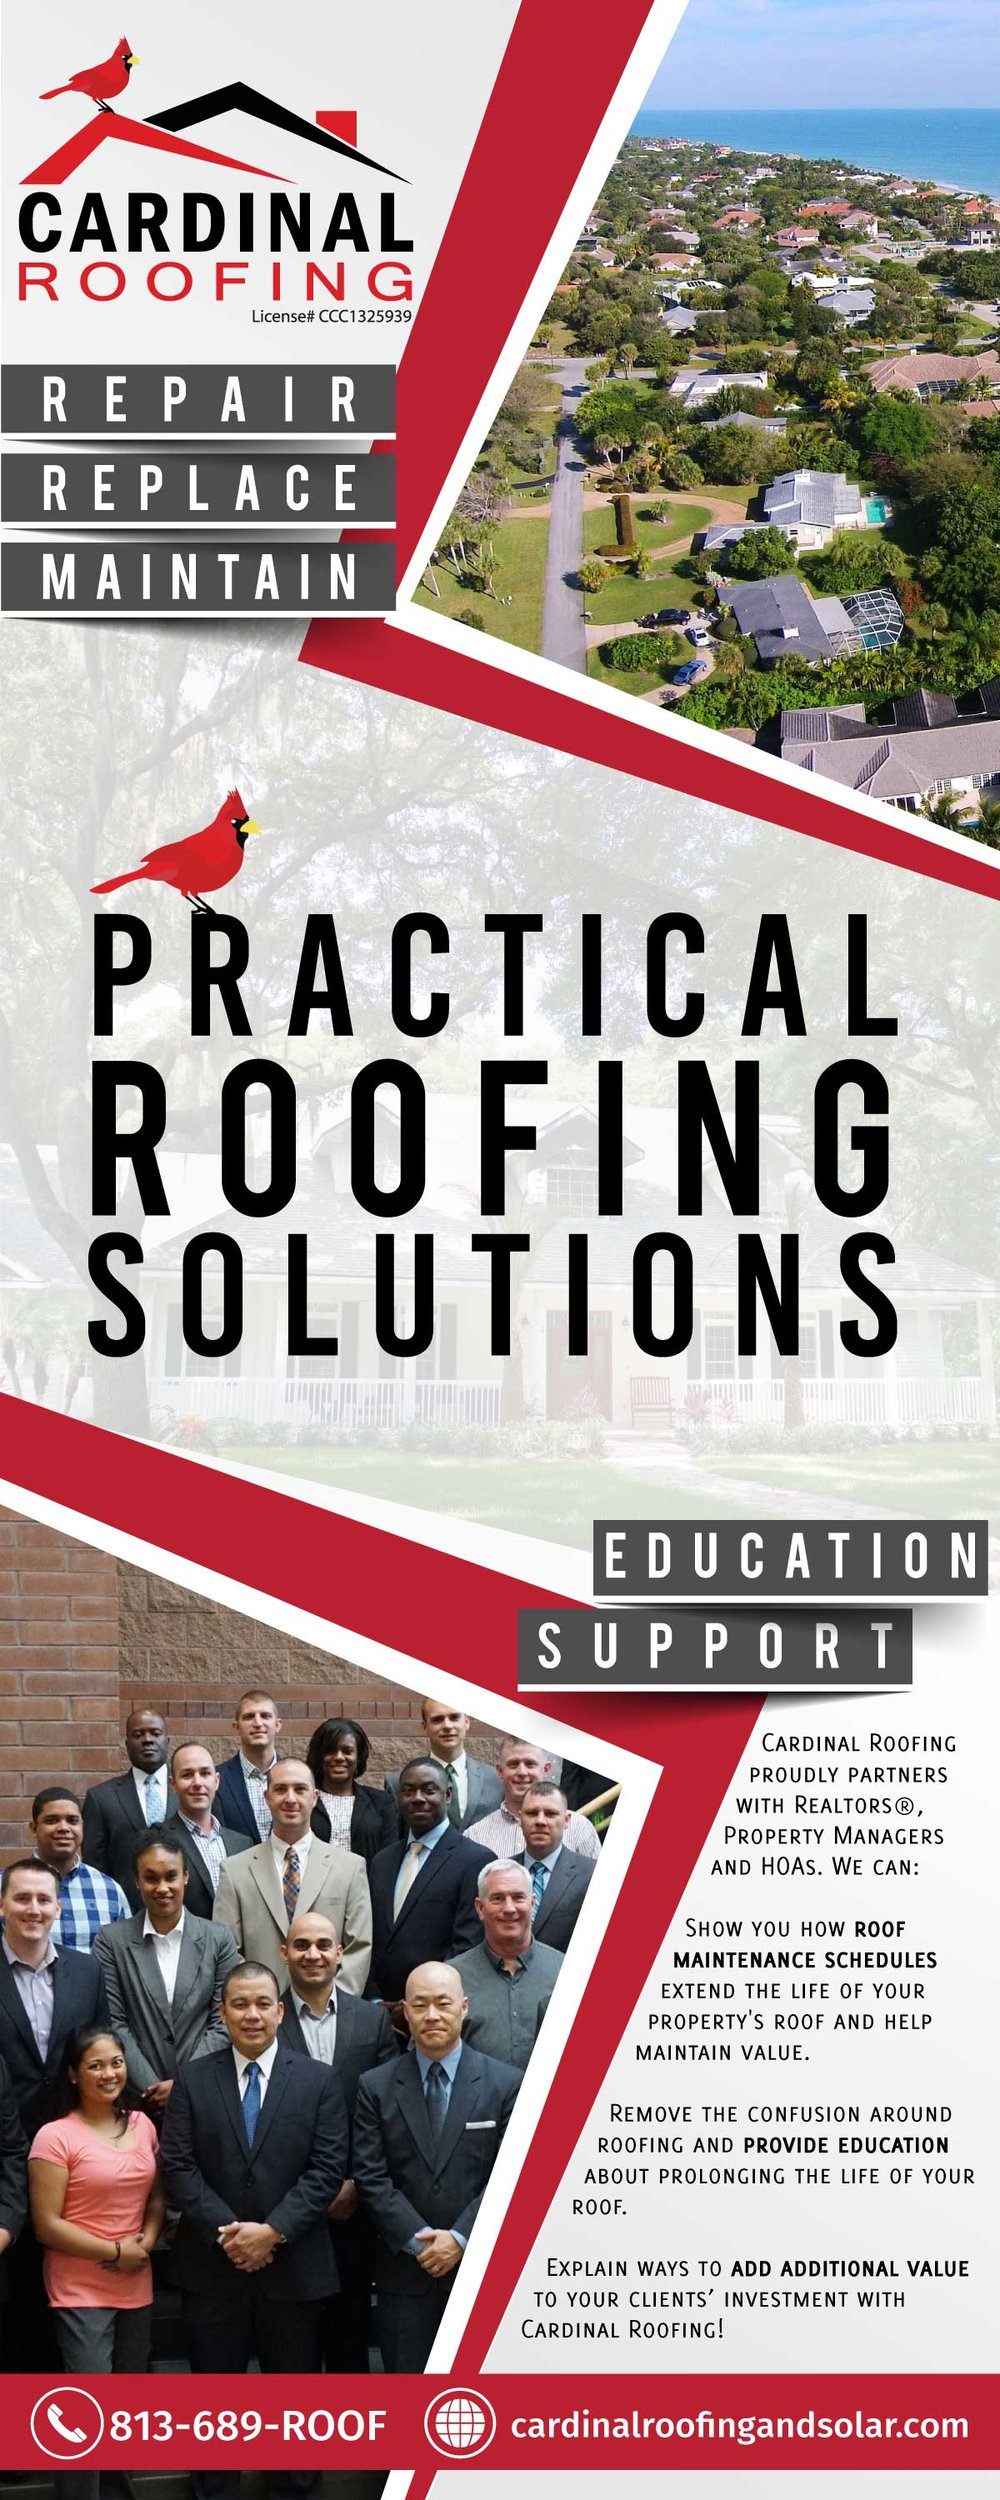 Cardinal Roofing banner